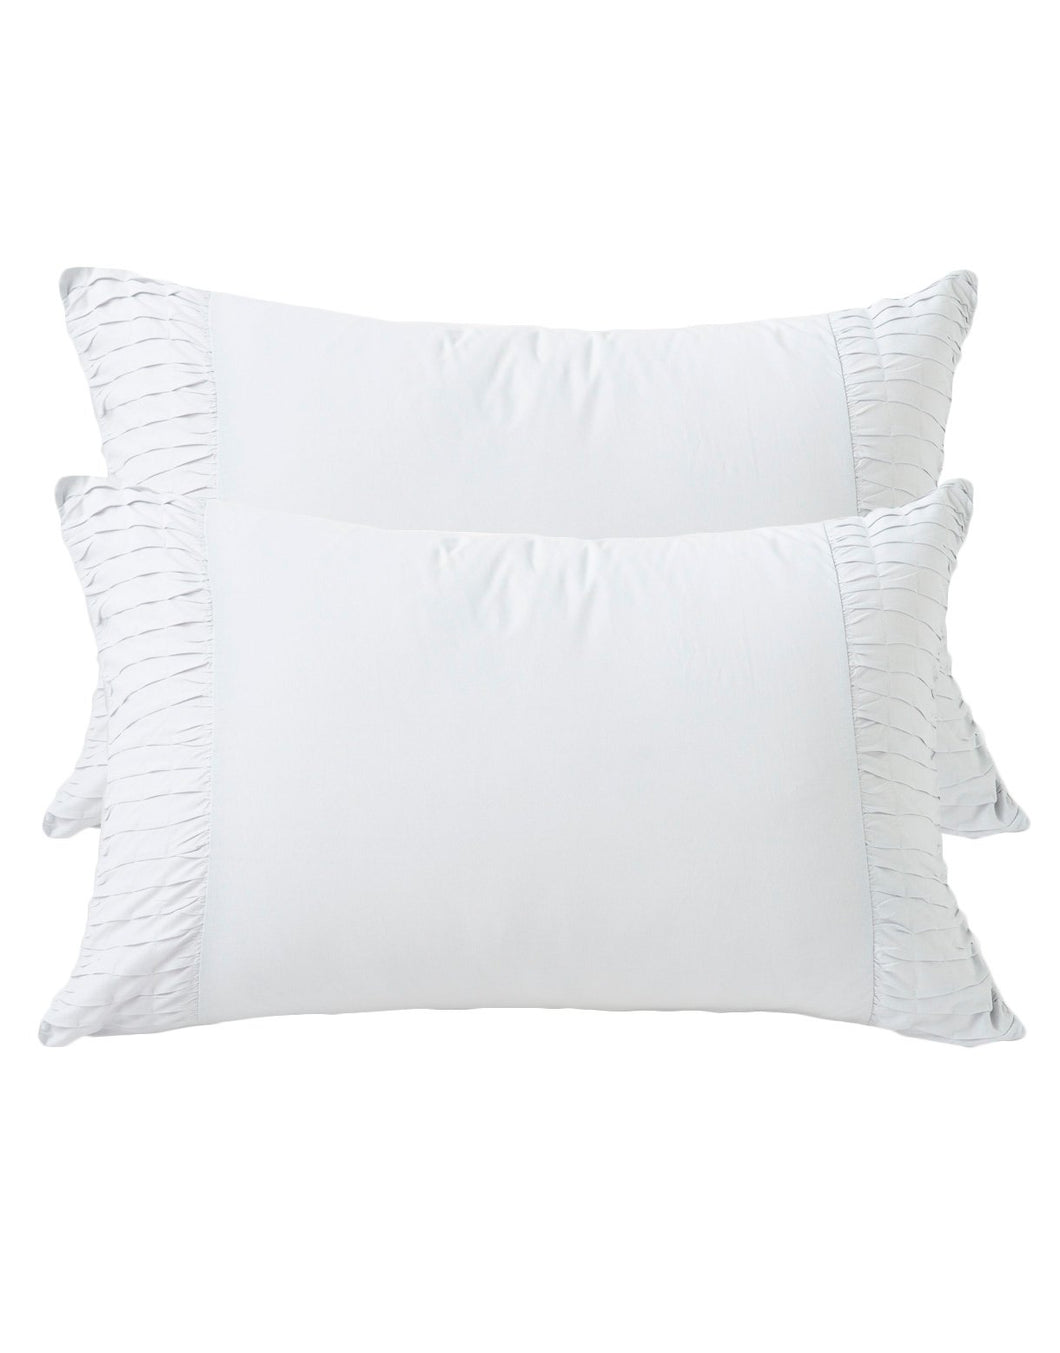 Rosette Pillowcase Set - Dove